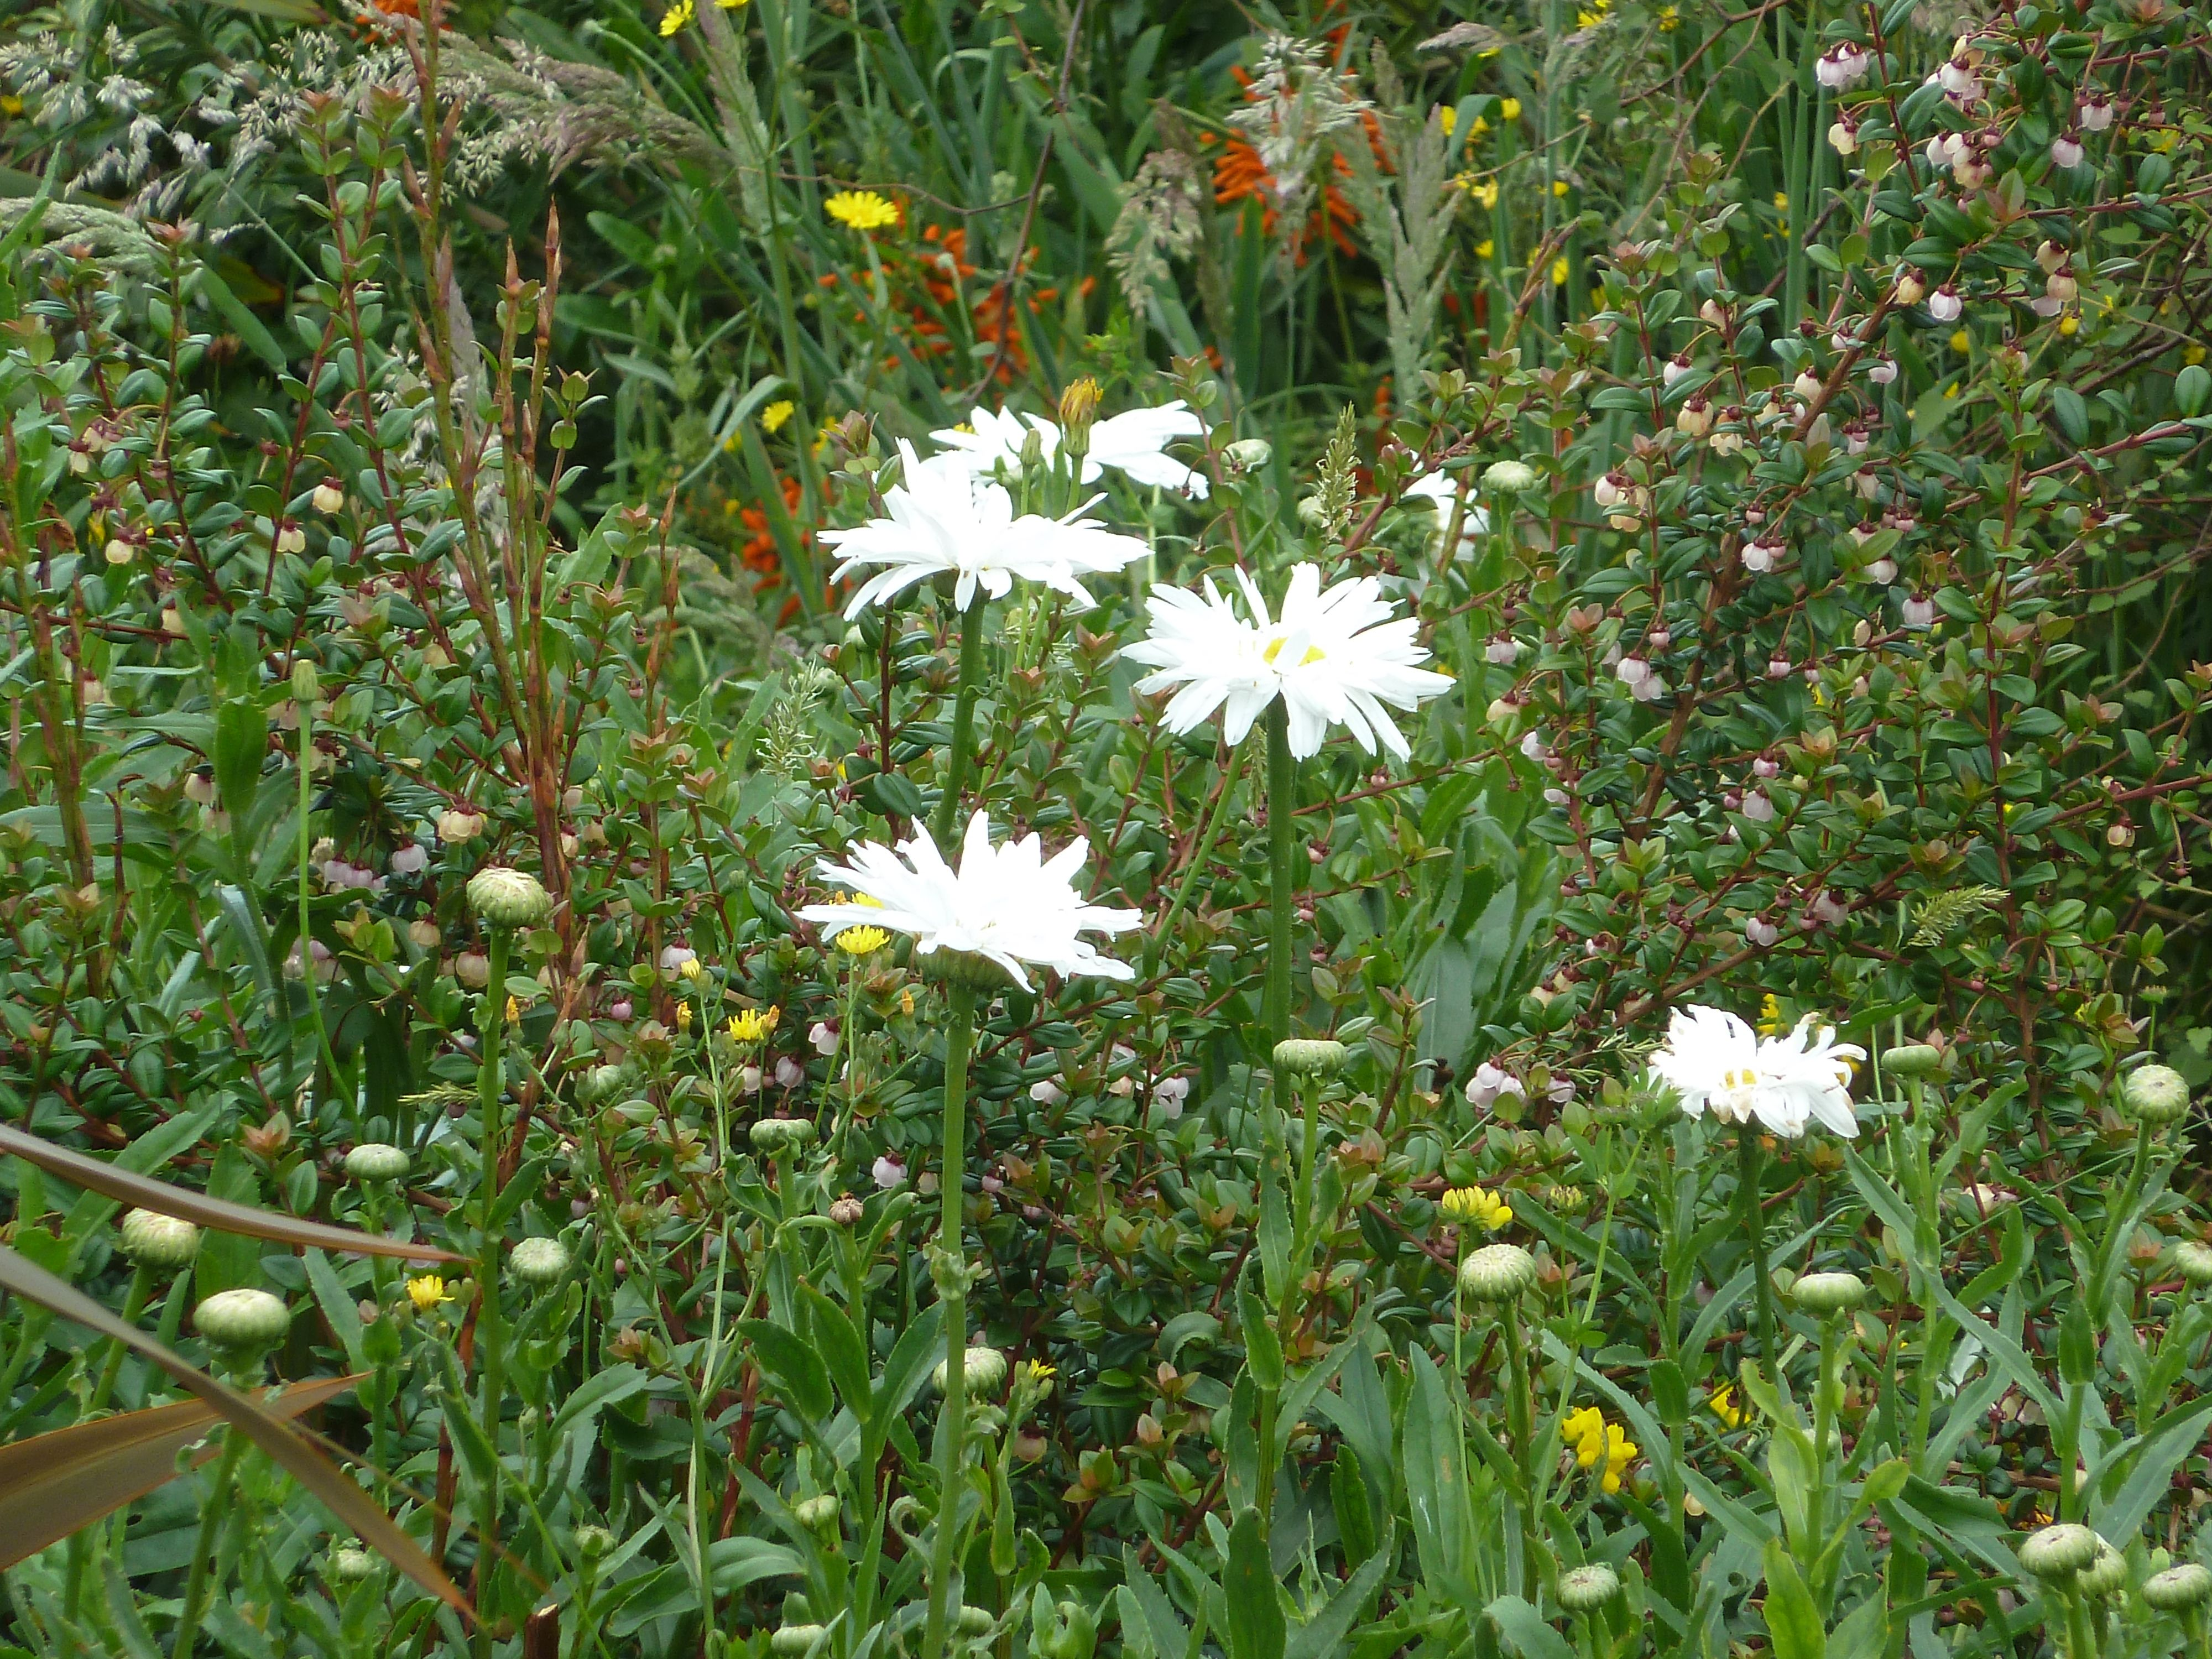 Mixed border - daisies and NZ cranberries.